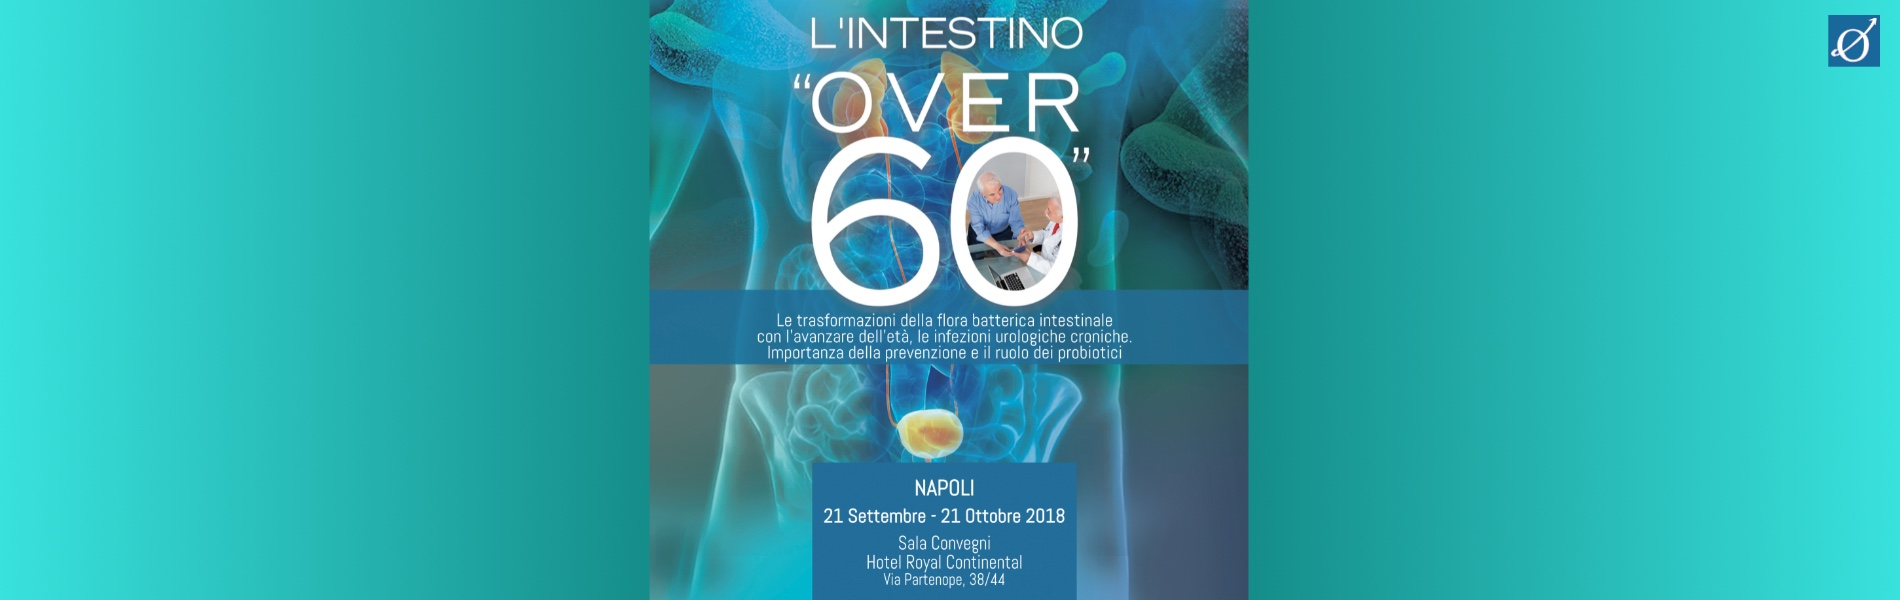 http://www.formedica.it/wp/wp-content/uploads/2018/07/gastro_napoli-2018.09.21_sito_low.jpg